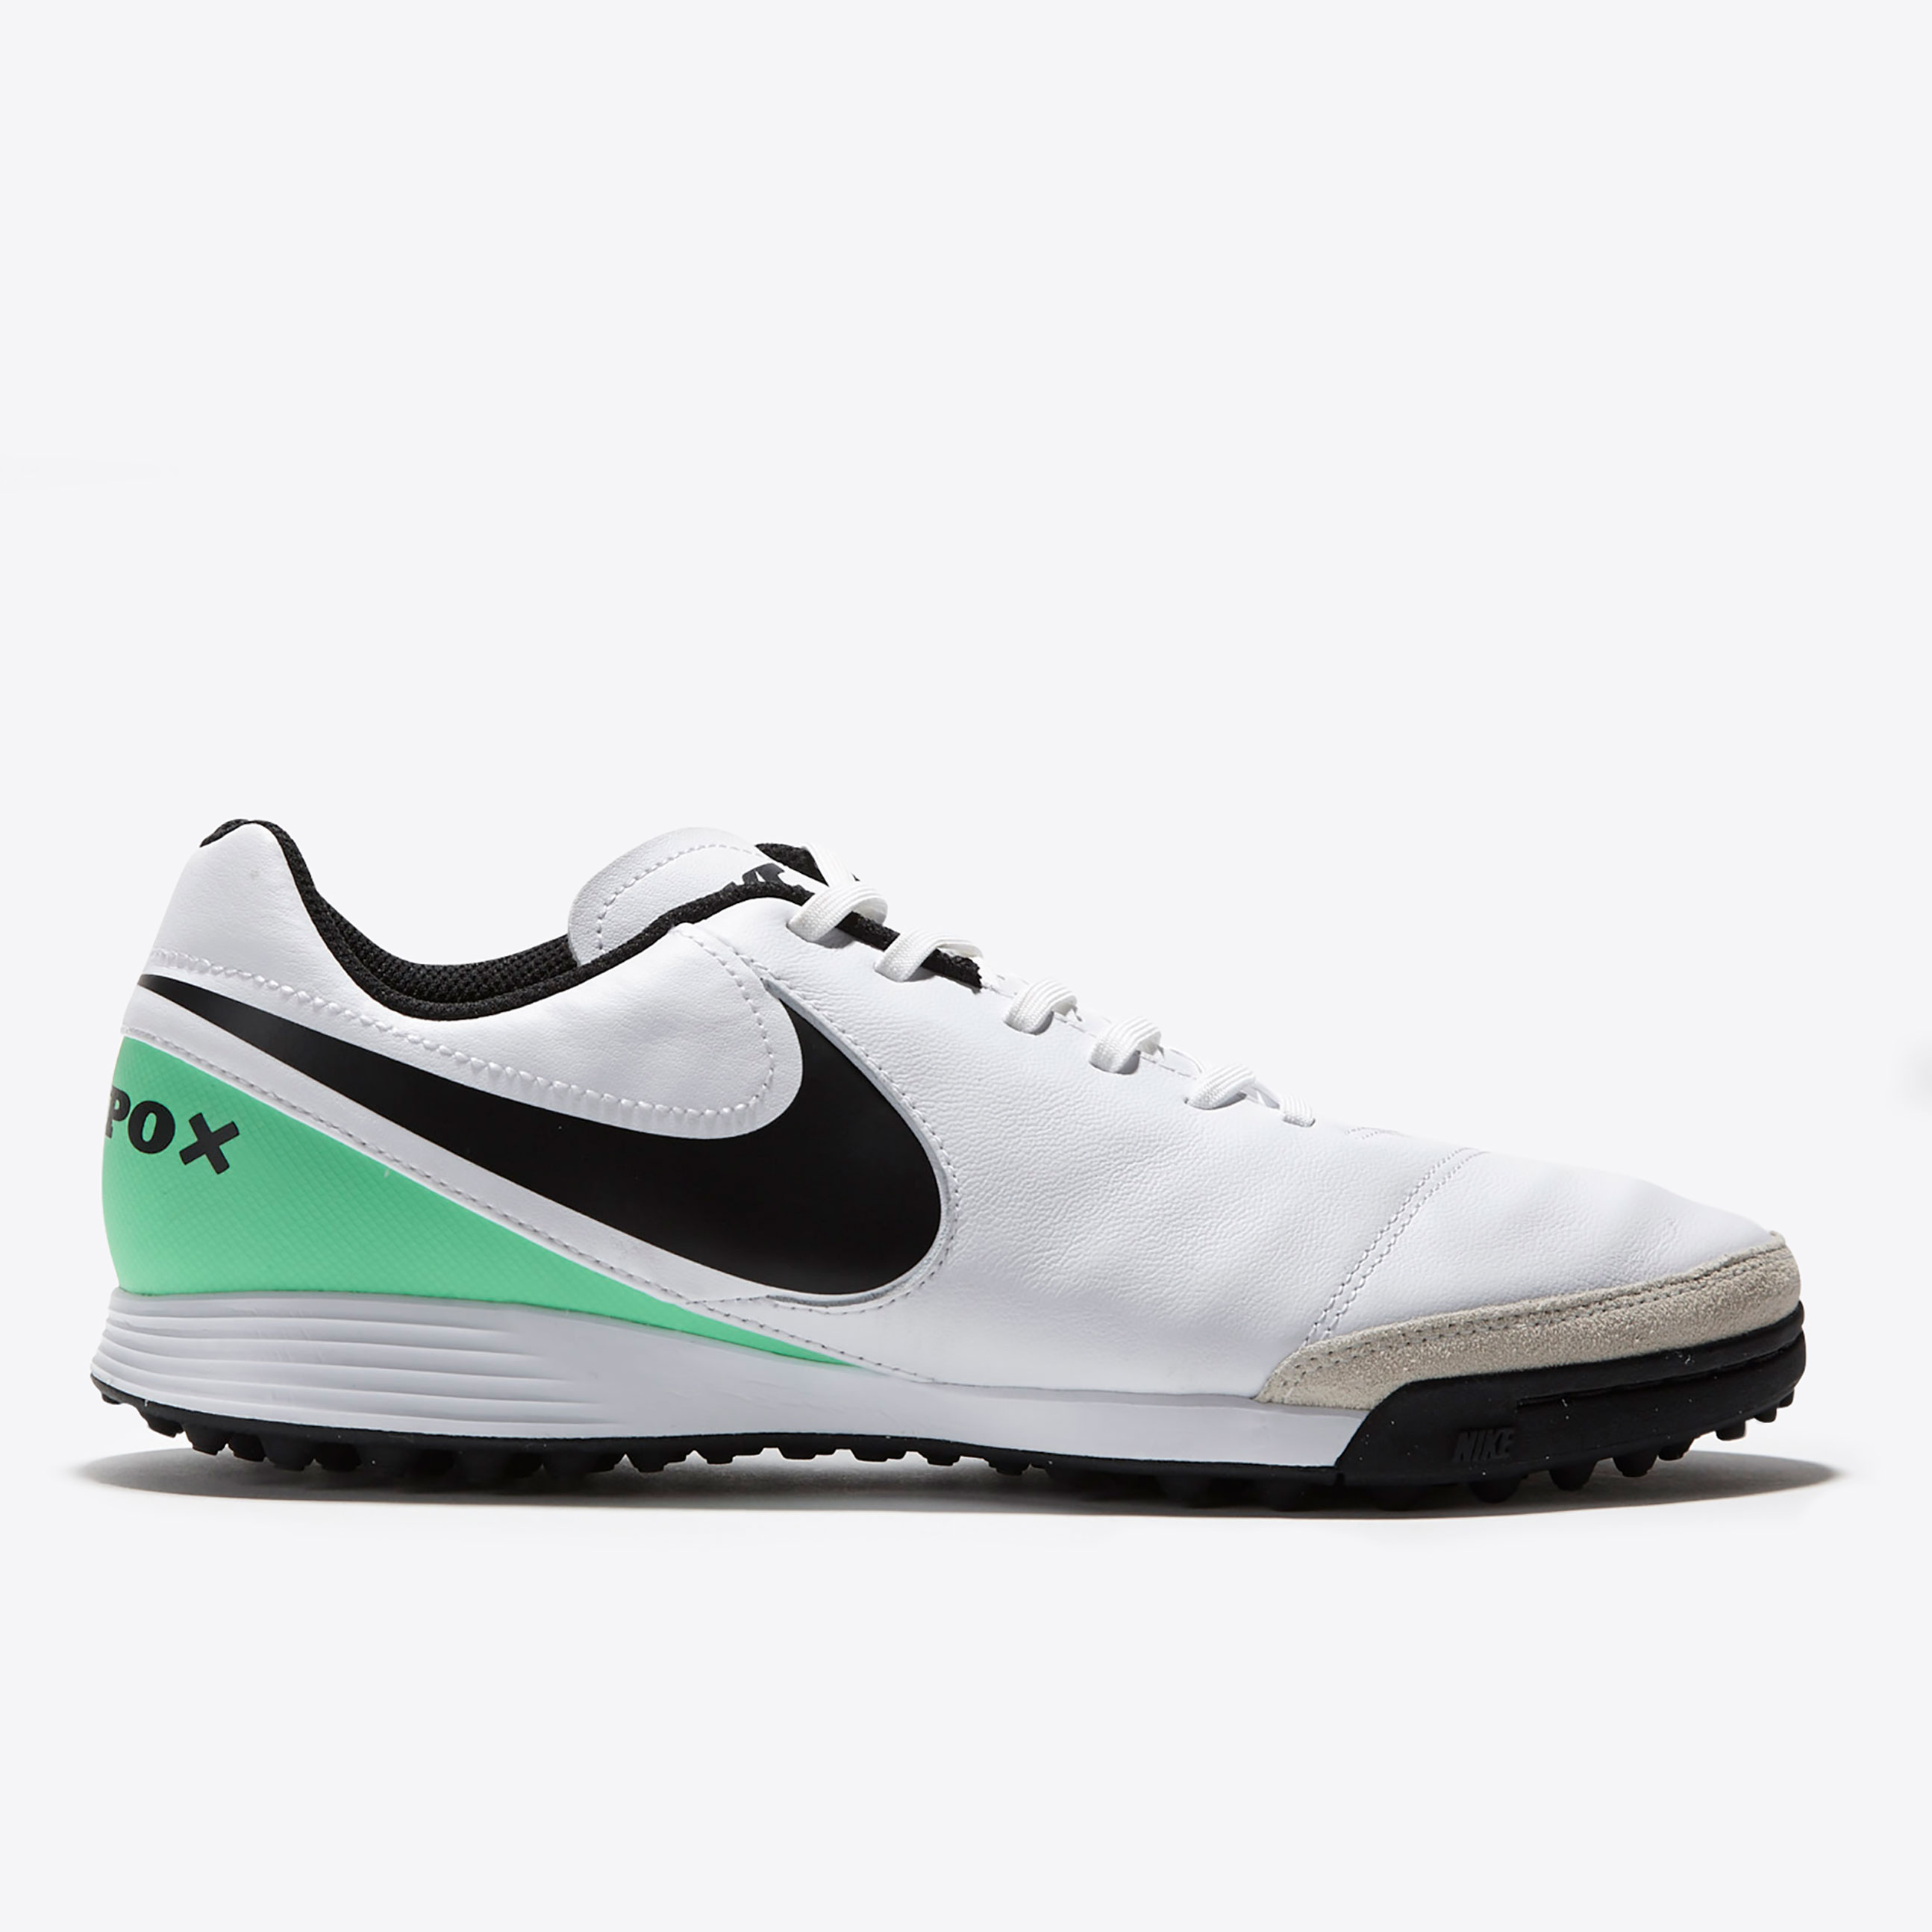 Nike Tiempo Genio II Leather Astroturf Trainers - White/Black/Electro